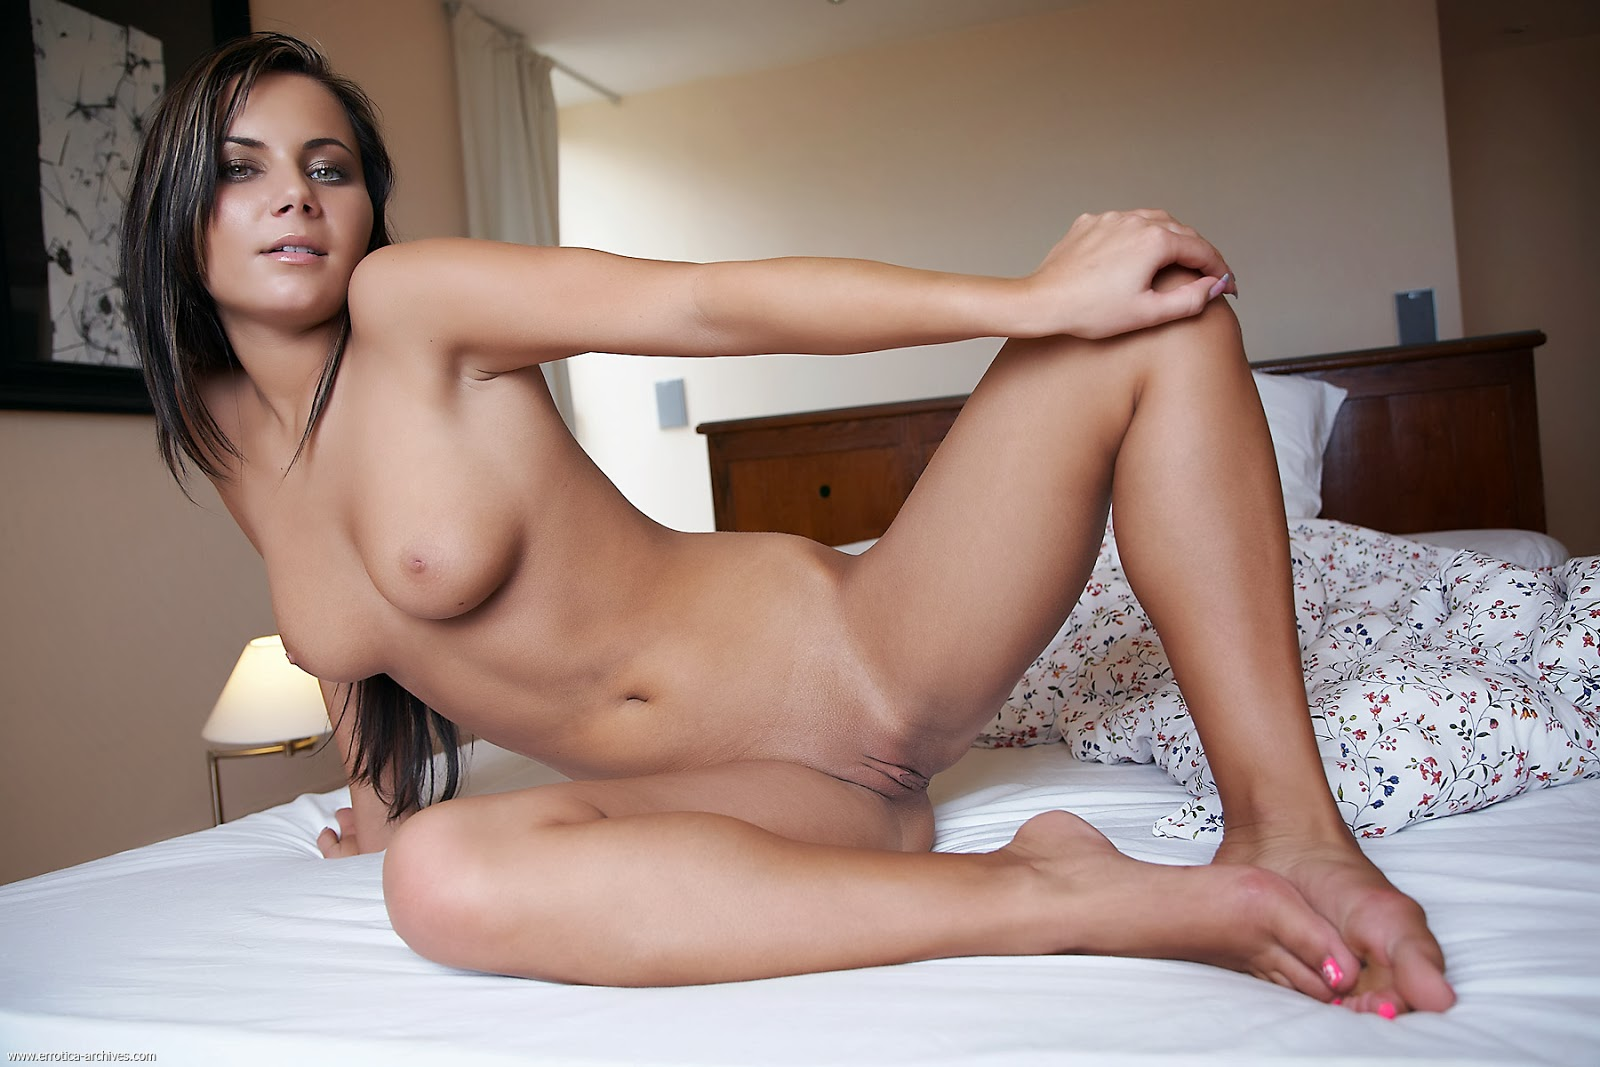 Hot Foreign Nudes 8